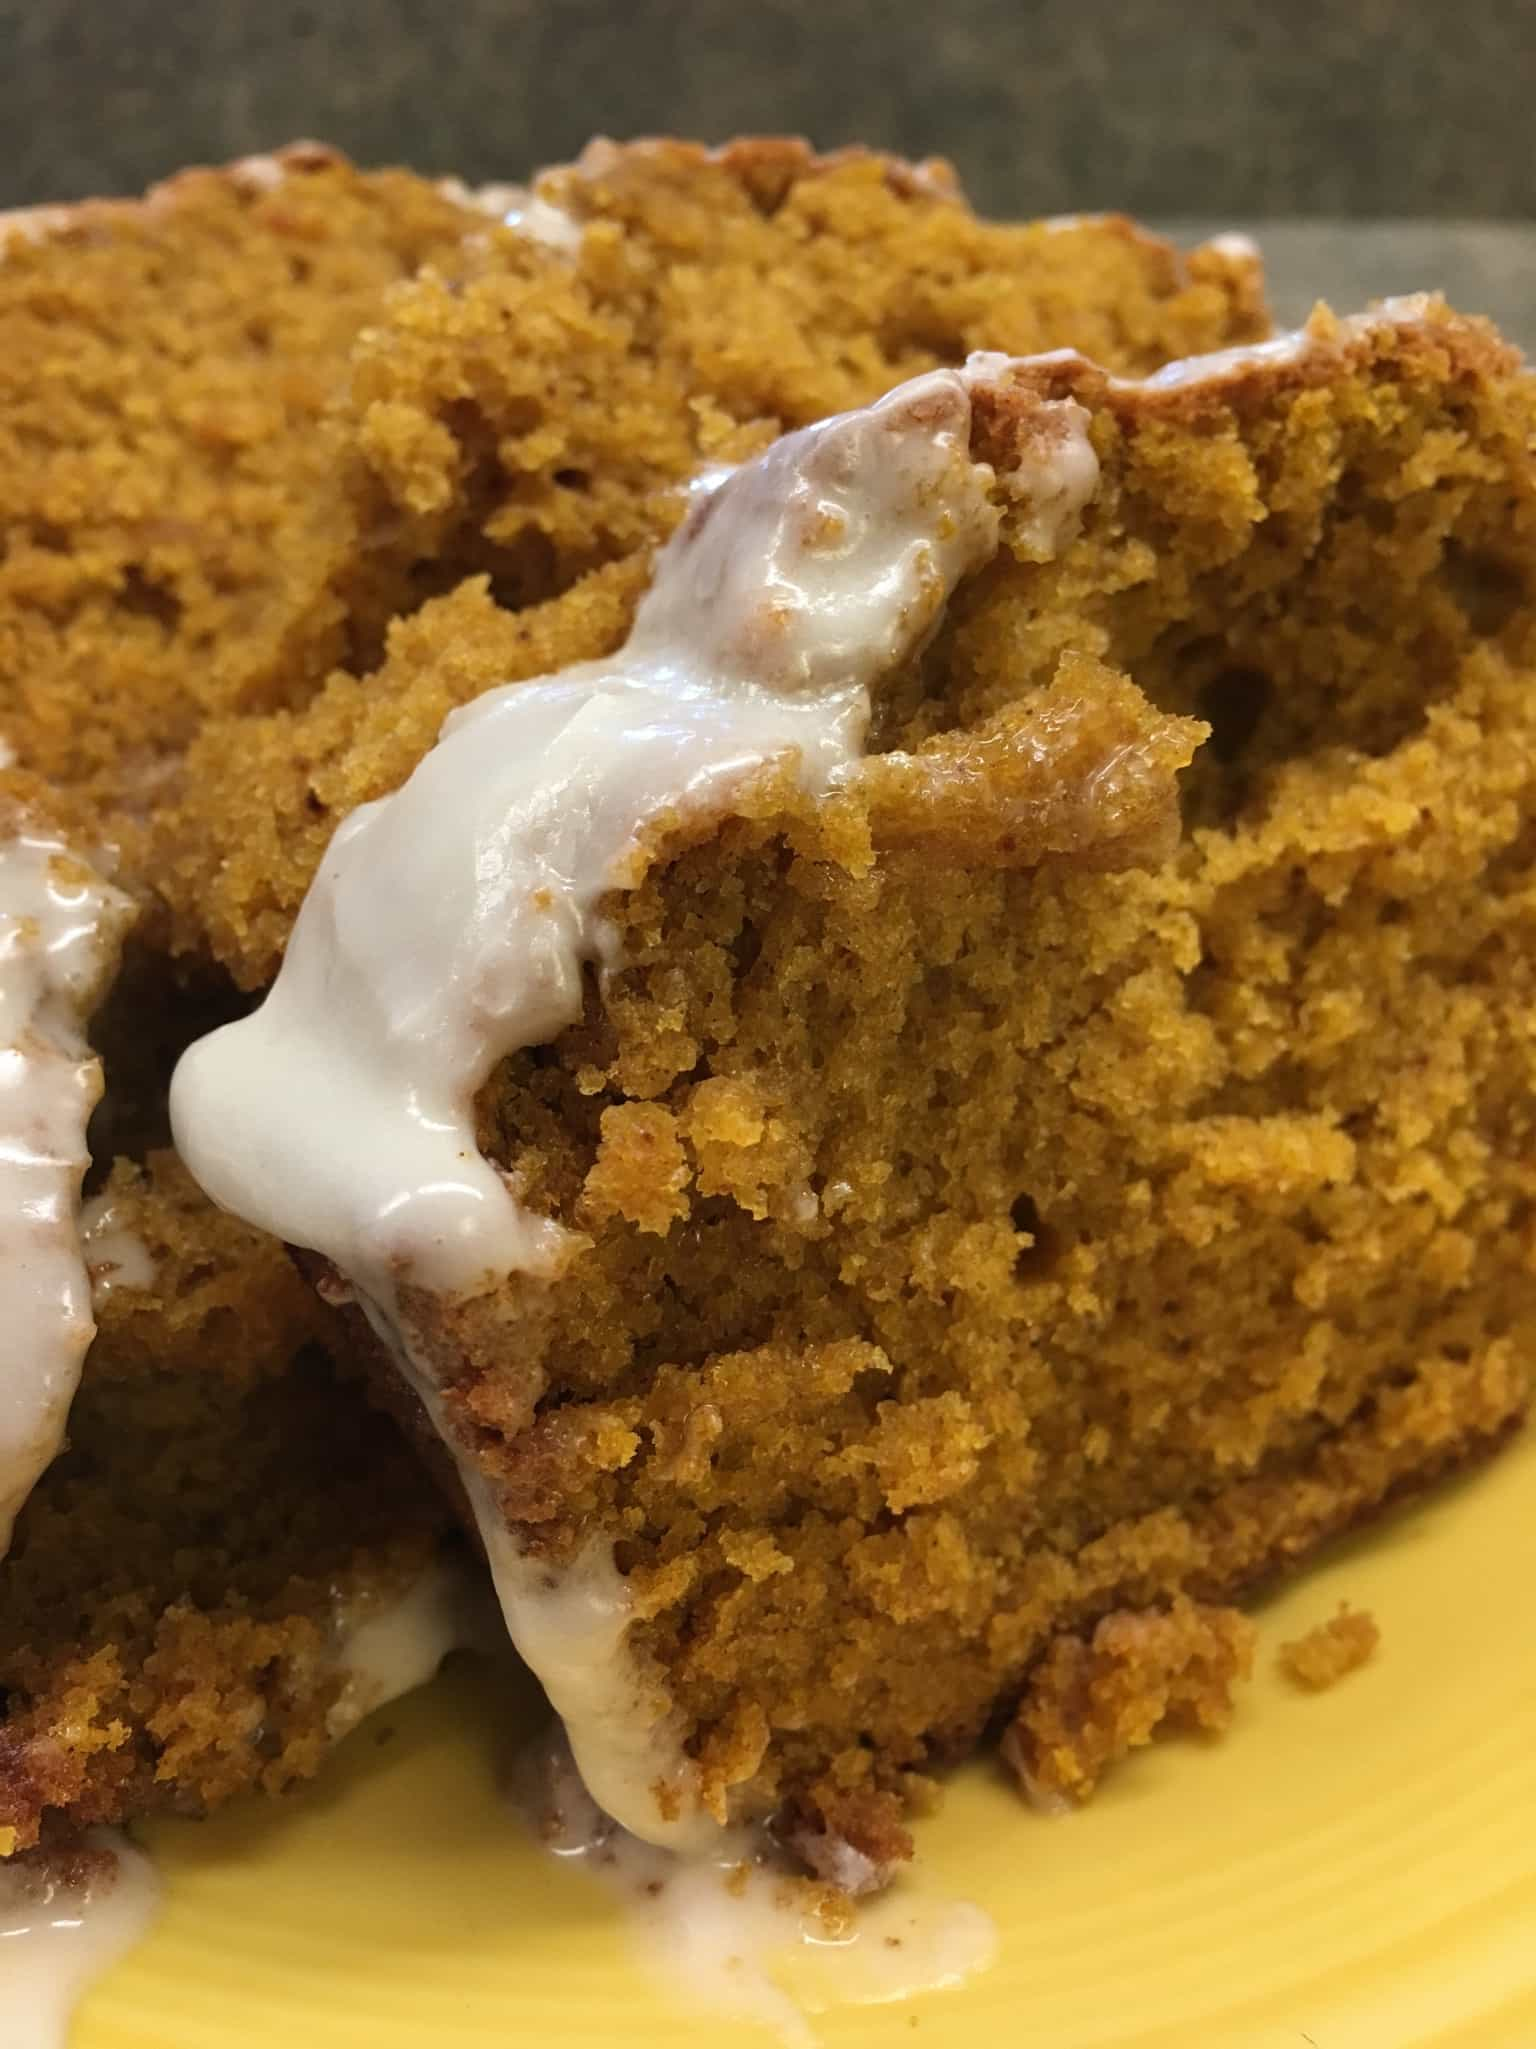 Pumpkin spice bread is a wonderful treat around the holidays.